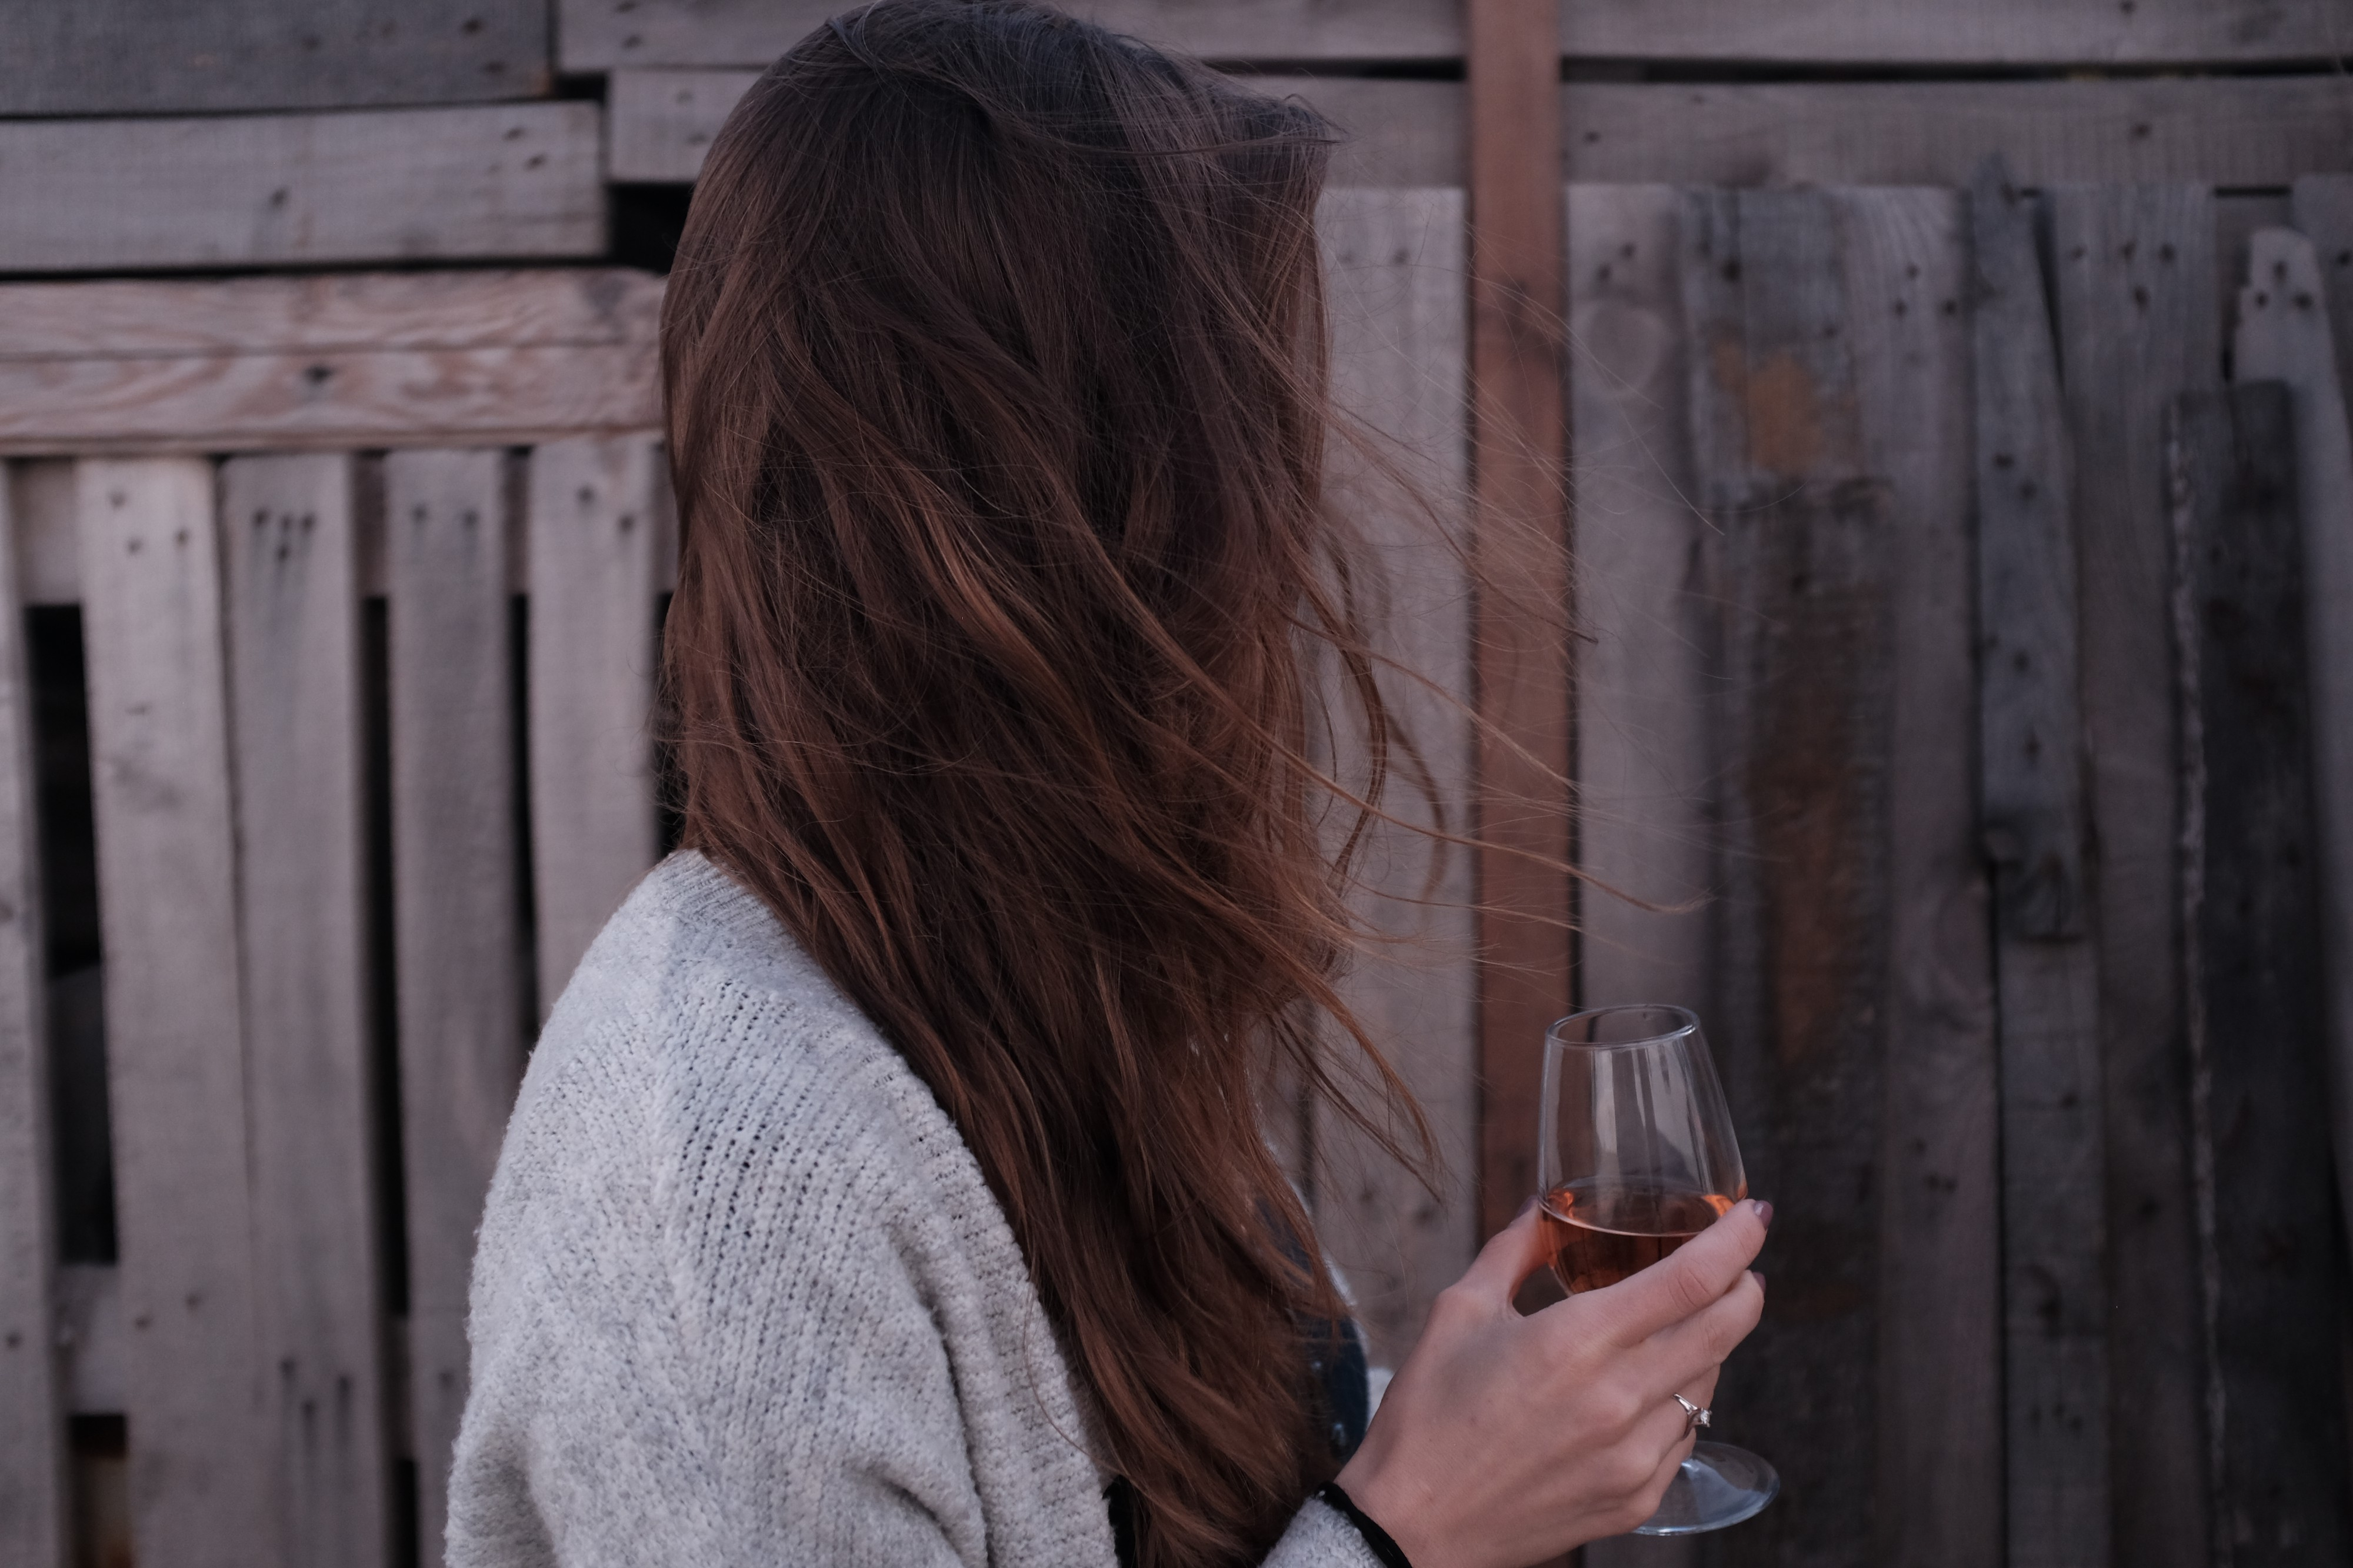 Side profile of a white woman holding a glass of wine, with her long brown hair obscuring her face.